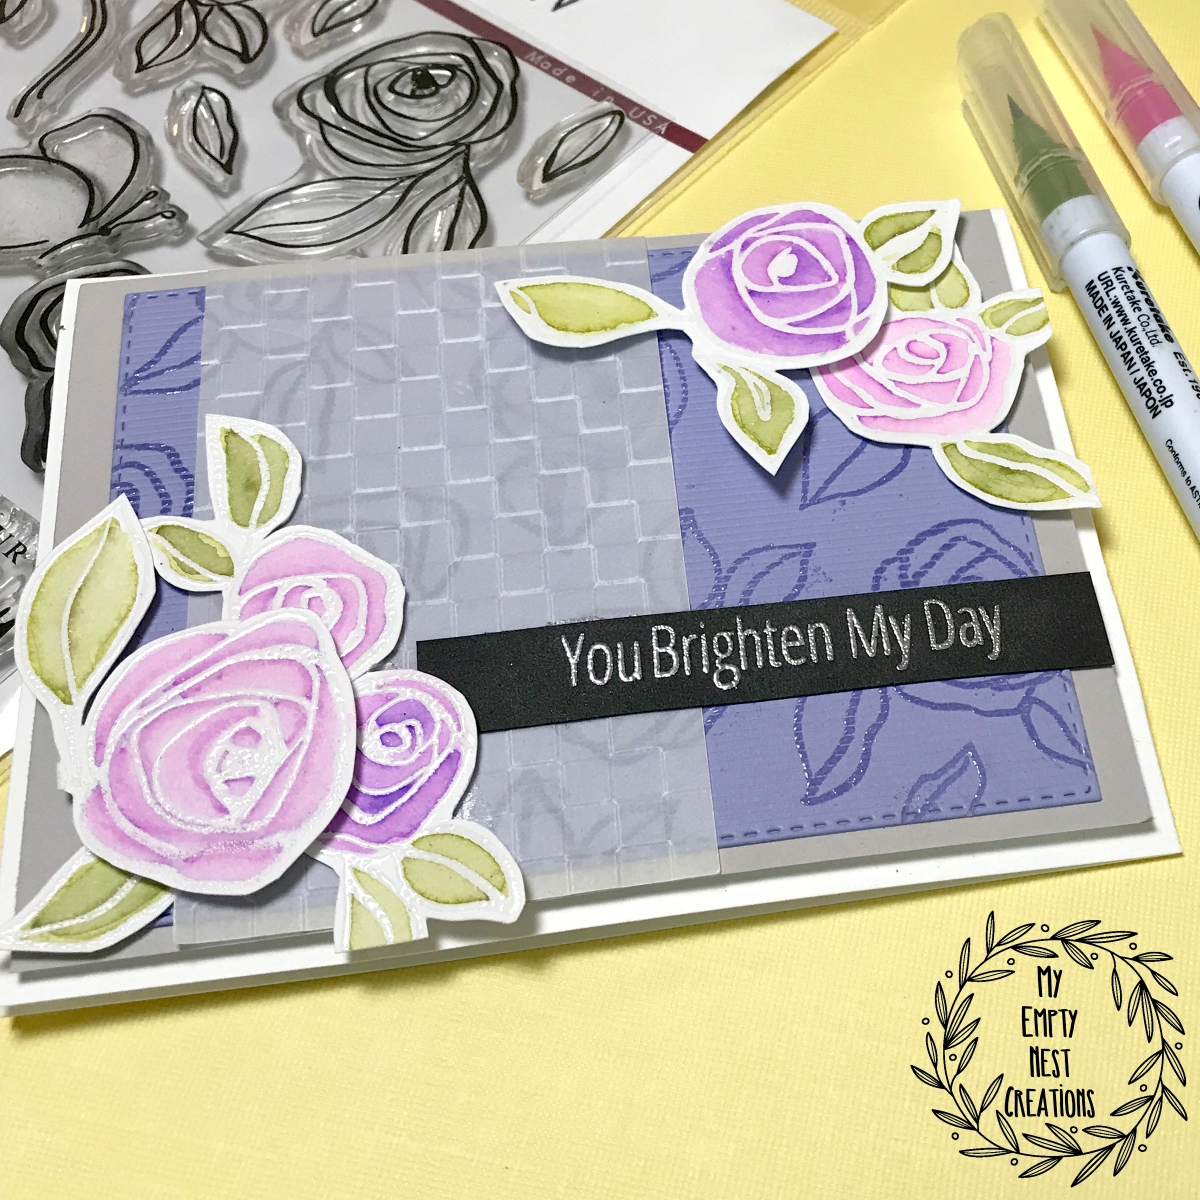 My Empty Nest Creations card using Altenew's Bamboo Rose Stamp Set